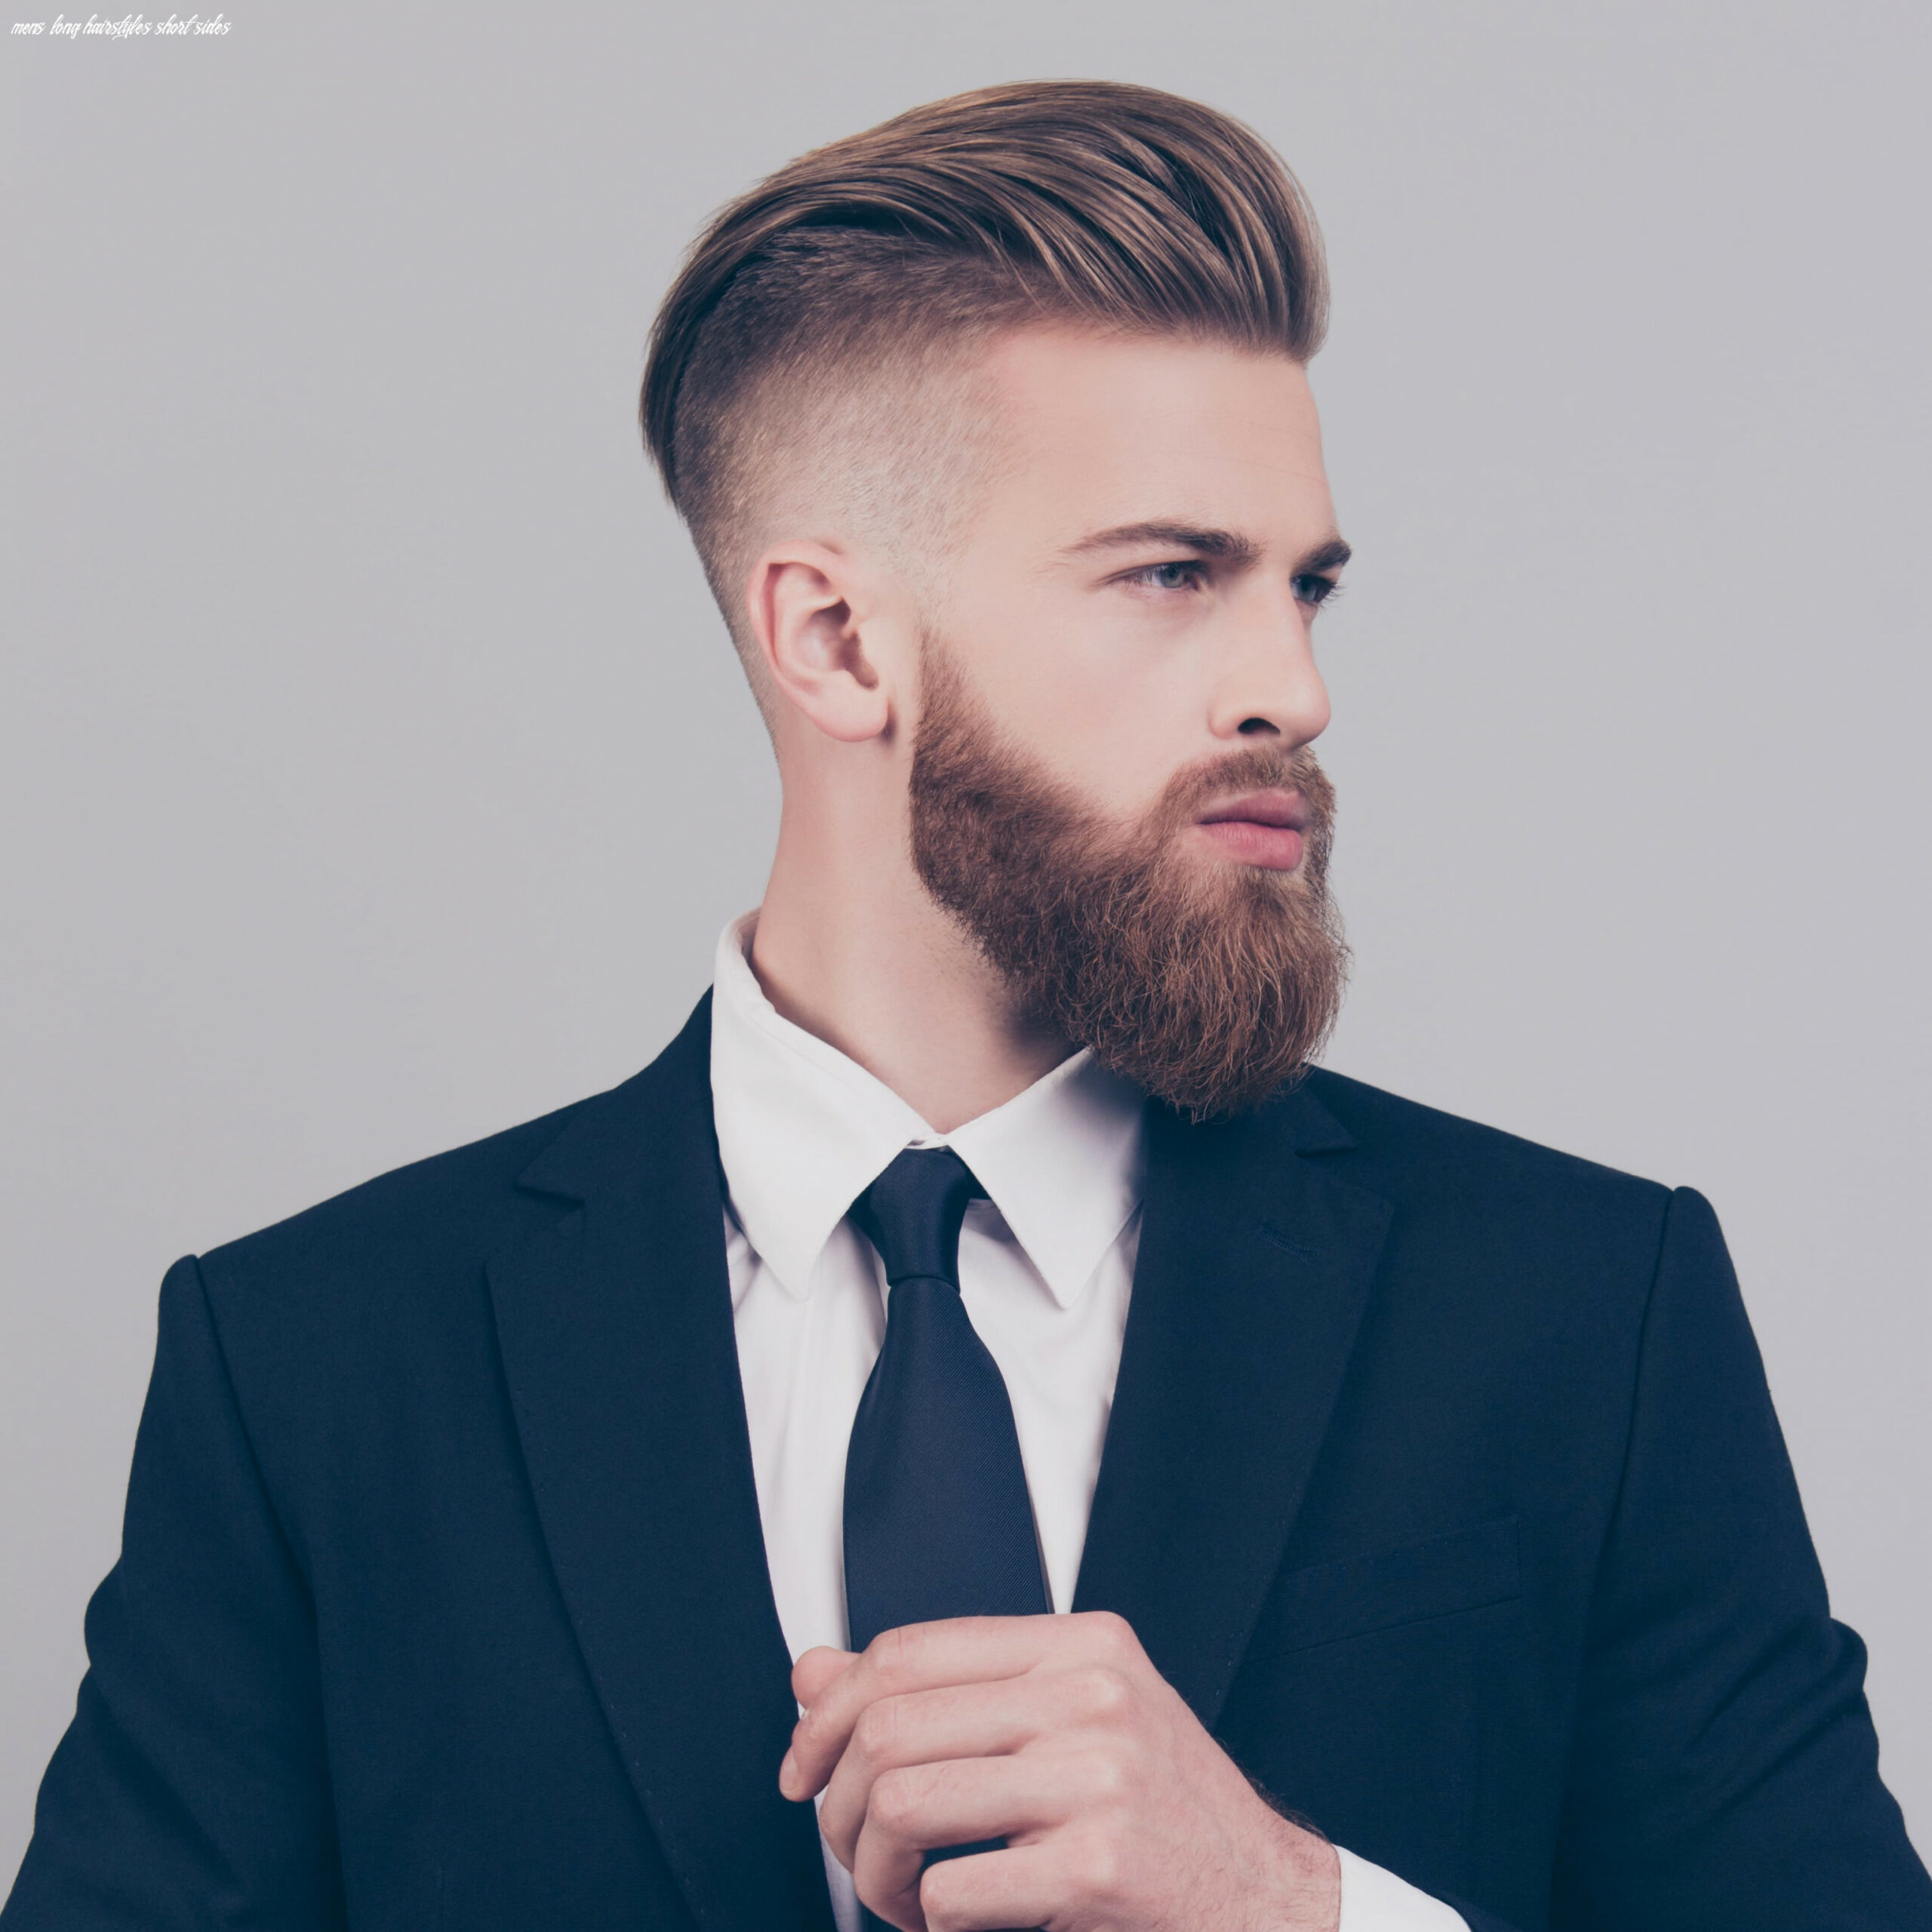 The best of both worlds: short sides & long top | haircut inspiration mens long hairstyles short sides